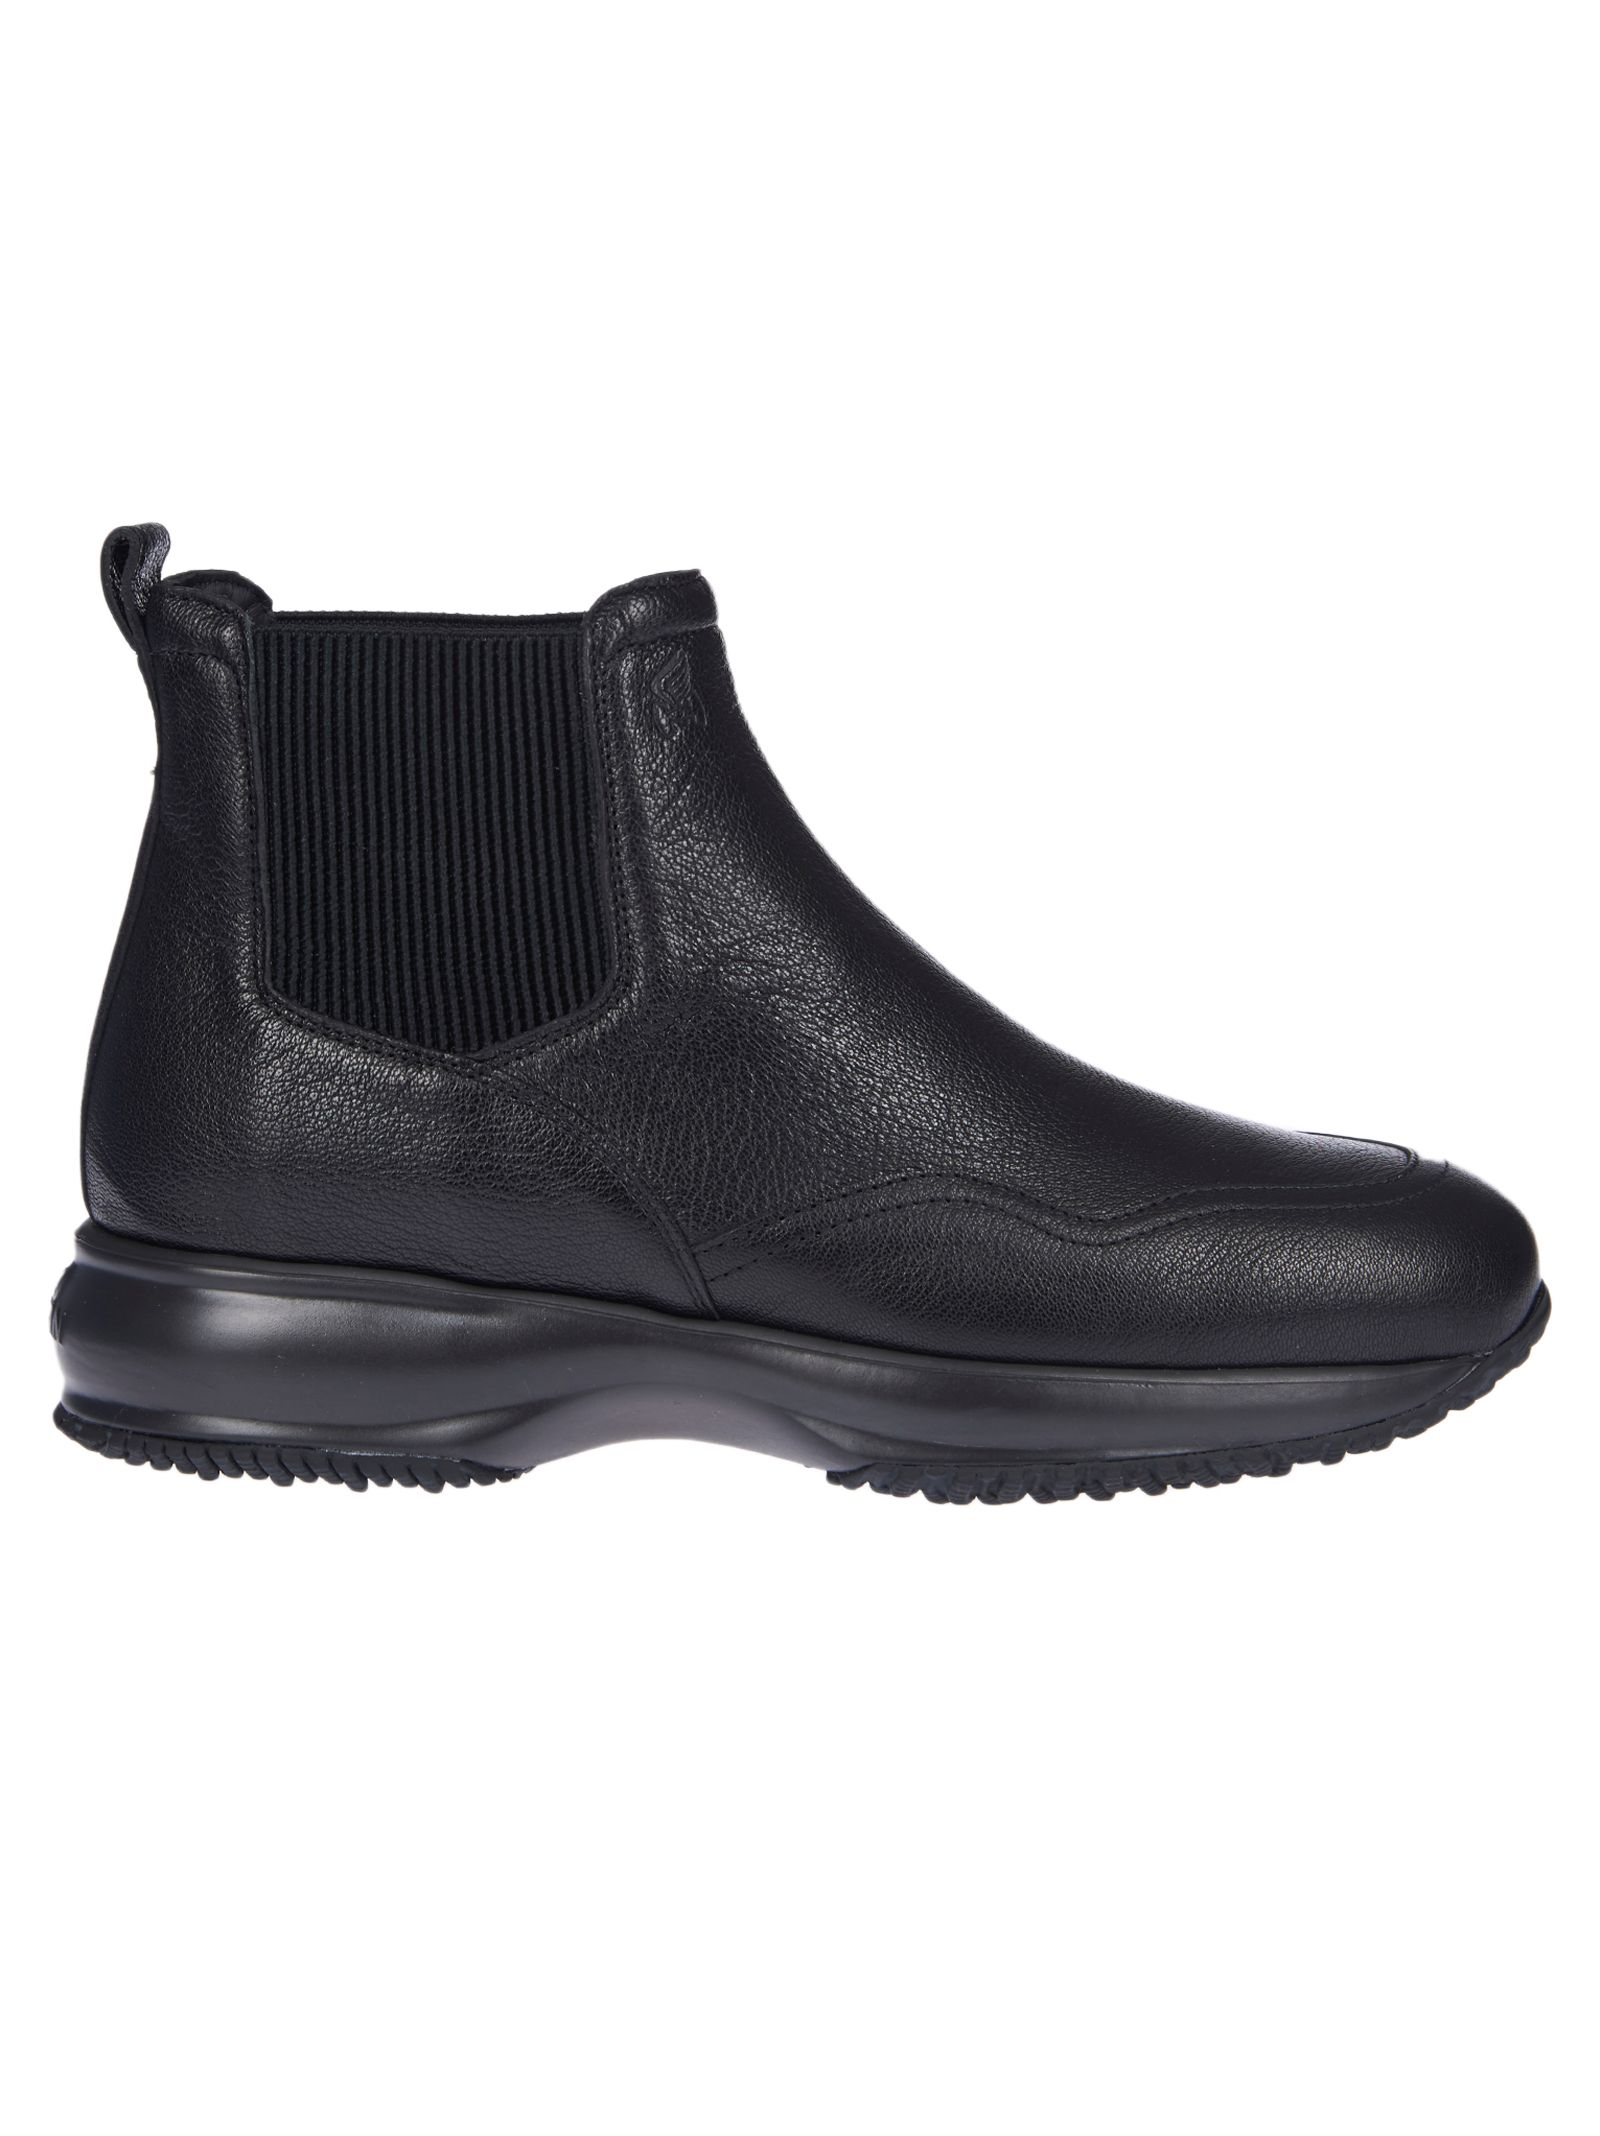 Hogan Black Interactive Chelsea Ankle Boots